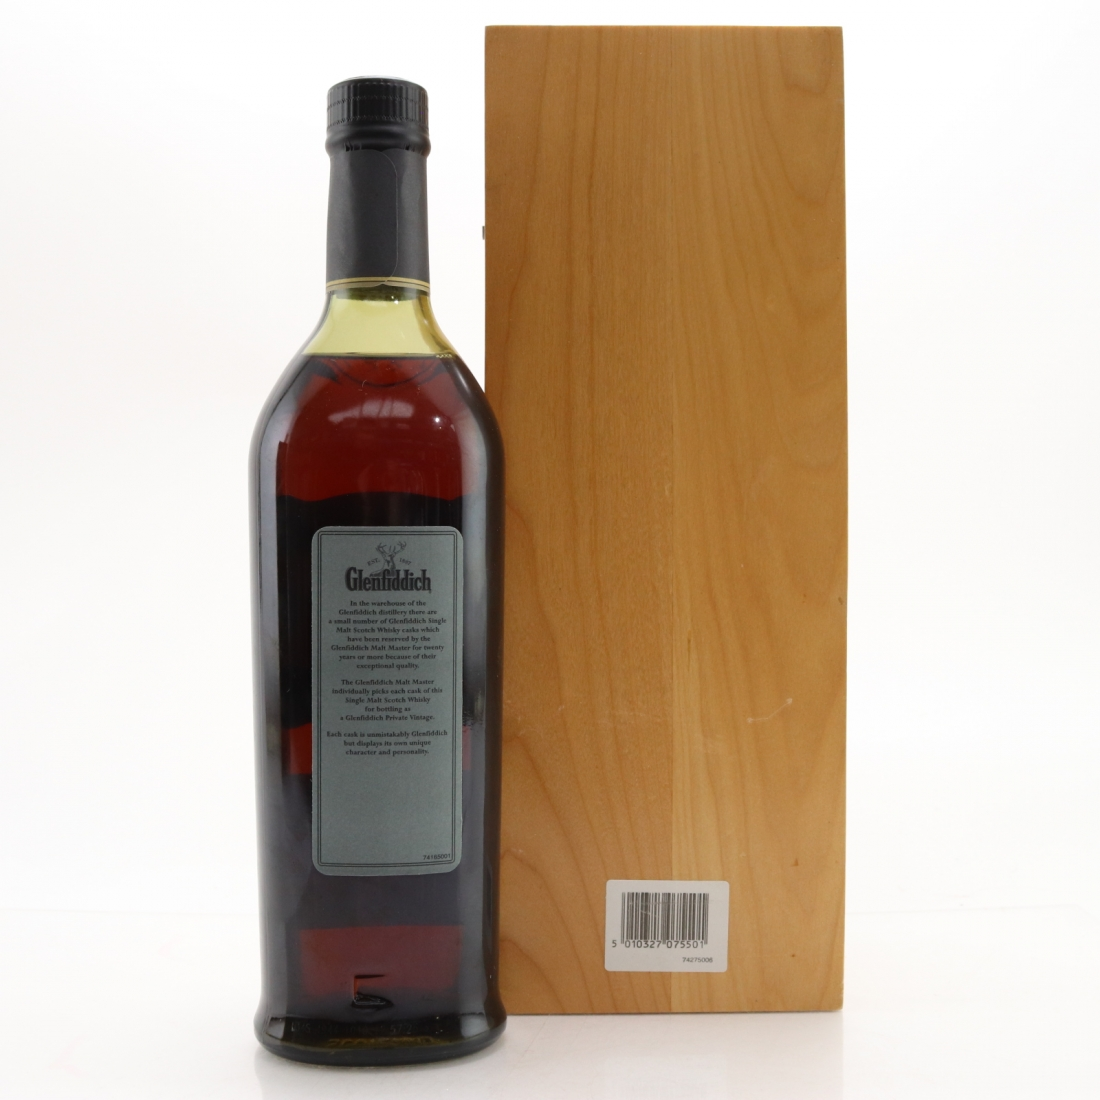 Glenfiddich 1975 Private Vintage #287